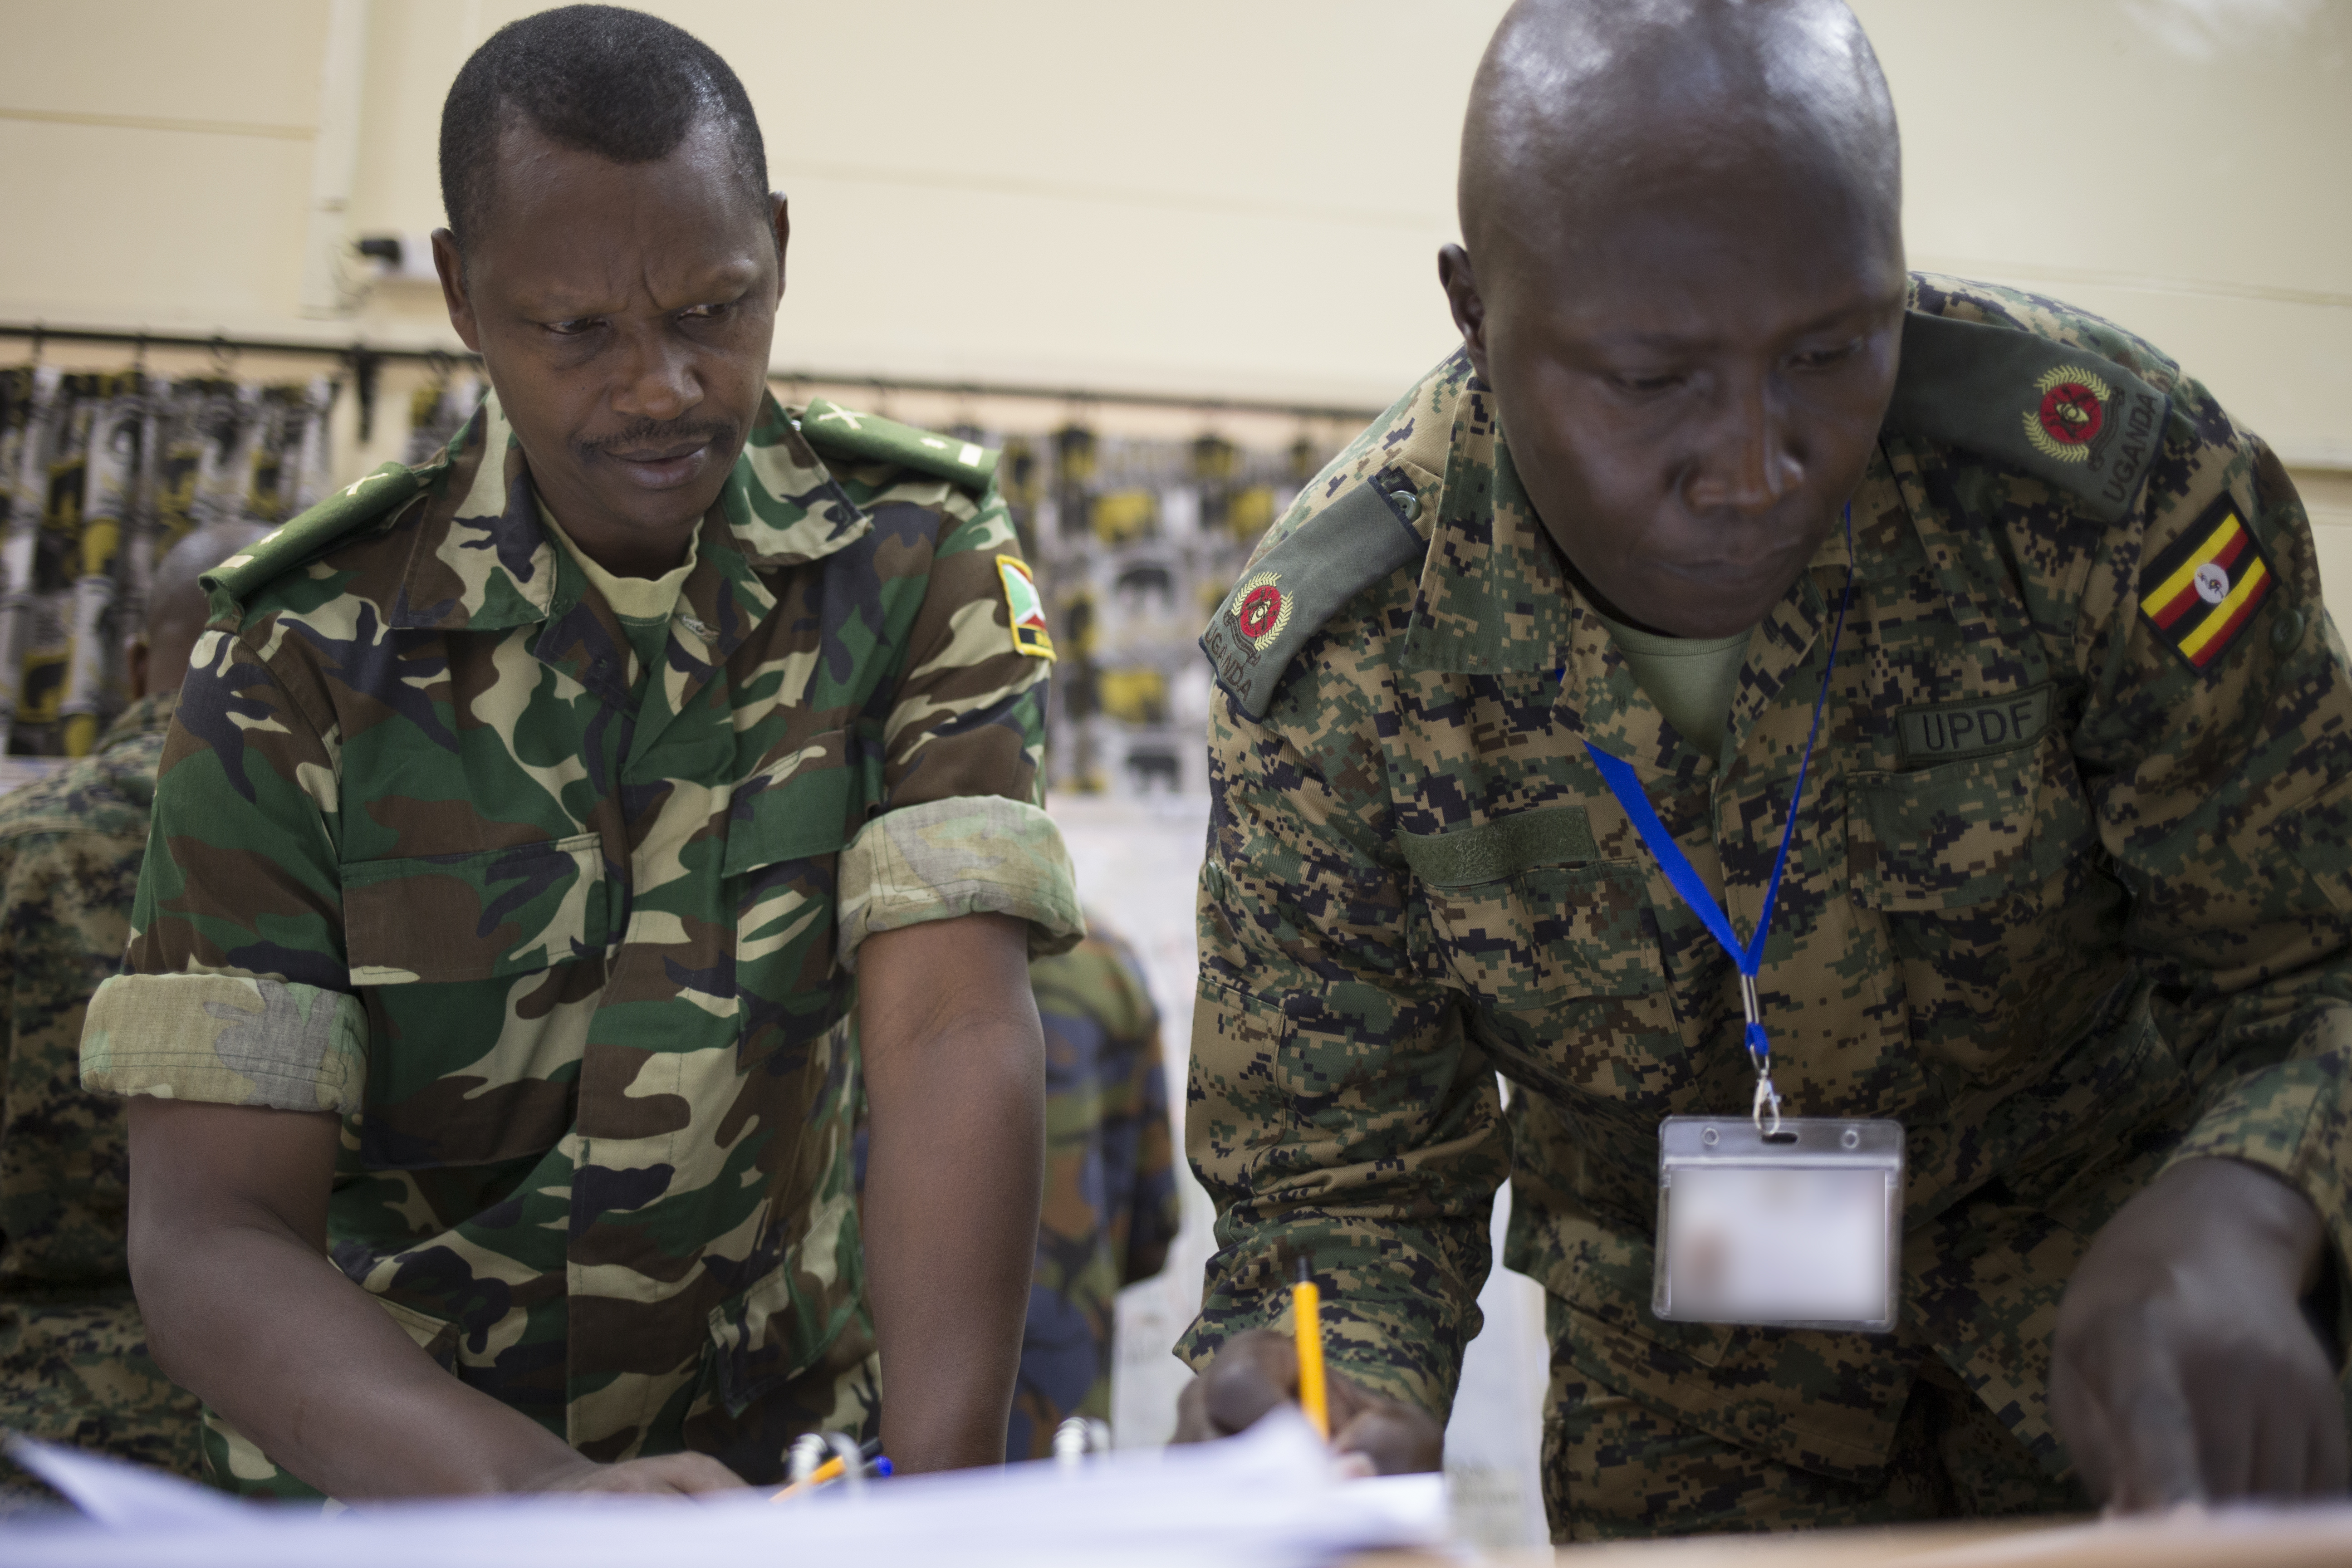 Staff officers from the Burundi National Defense Force and Uganda People's Defense Force work together to plan and coordinate responses to simulated events during the command post exercise of the Africa Contingency Operations Training and Assistance force headquarters training program held at the Humanitarian Peace Support School in Nairobi, Kenya, March 9, 2017.  The five-week course was facilitated by the U.S. Department of State and is designed to improve Africa's military capabilities by providing selected training necessary for multinational peace support operations. (U.S. Army photo by Capt. Alán Ortiz)